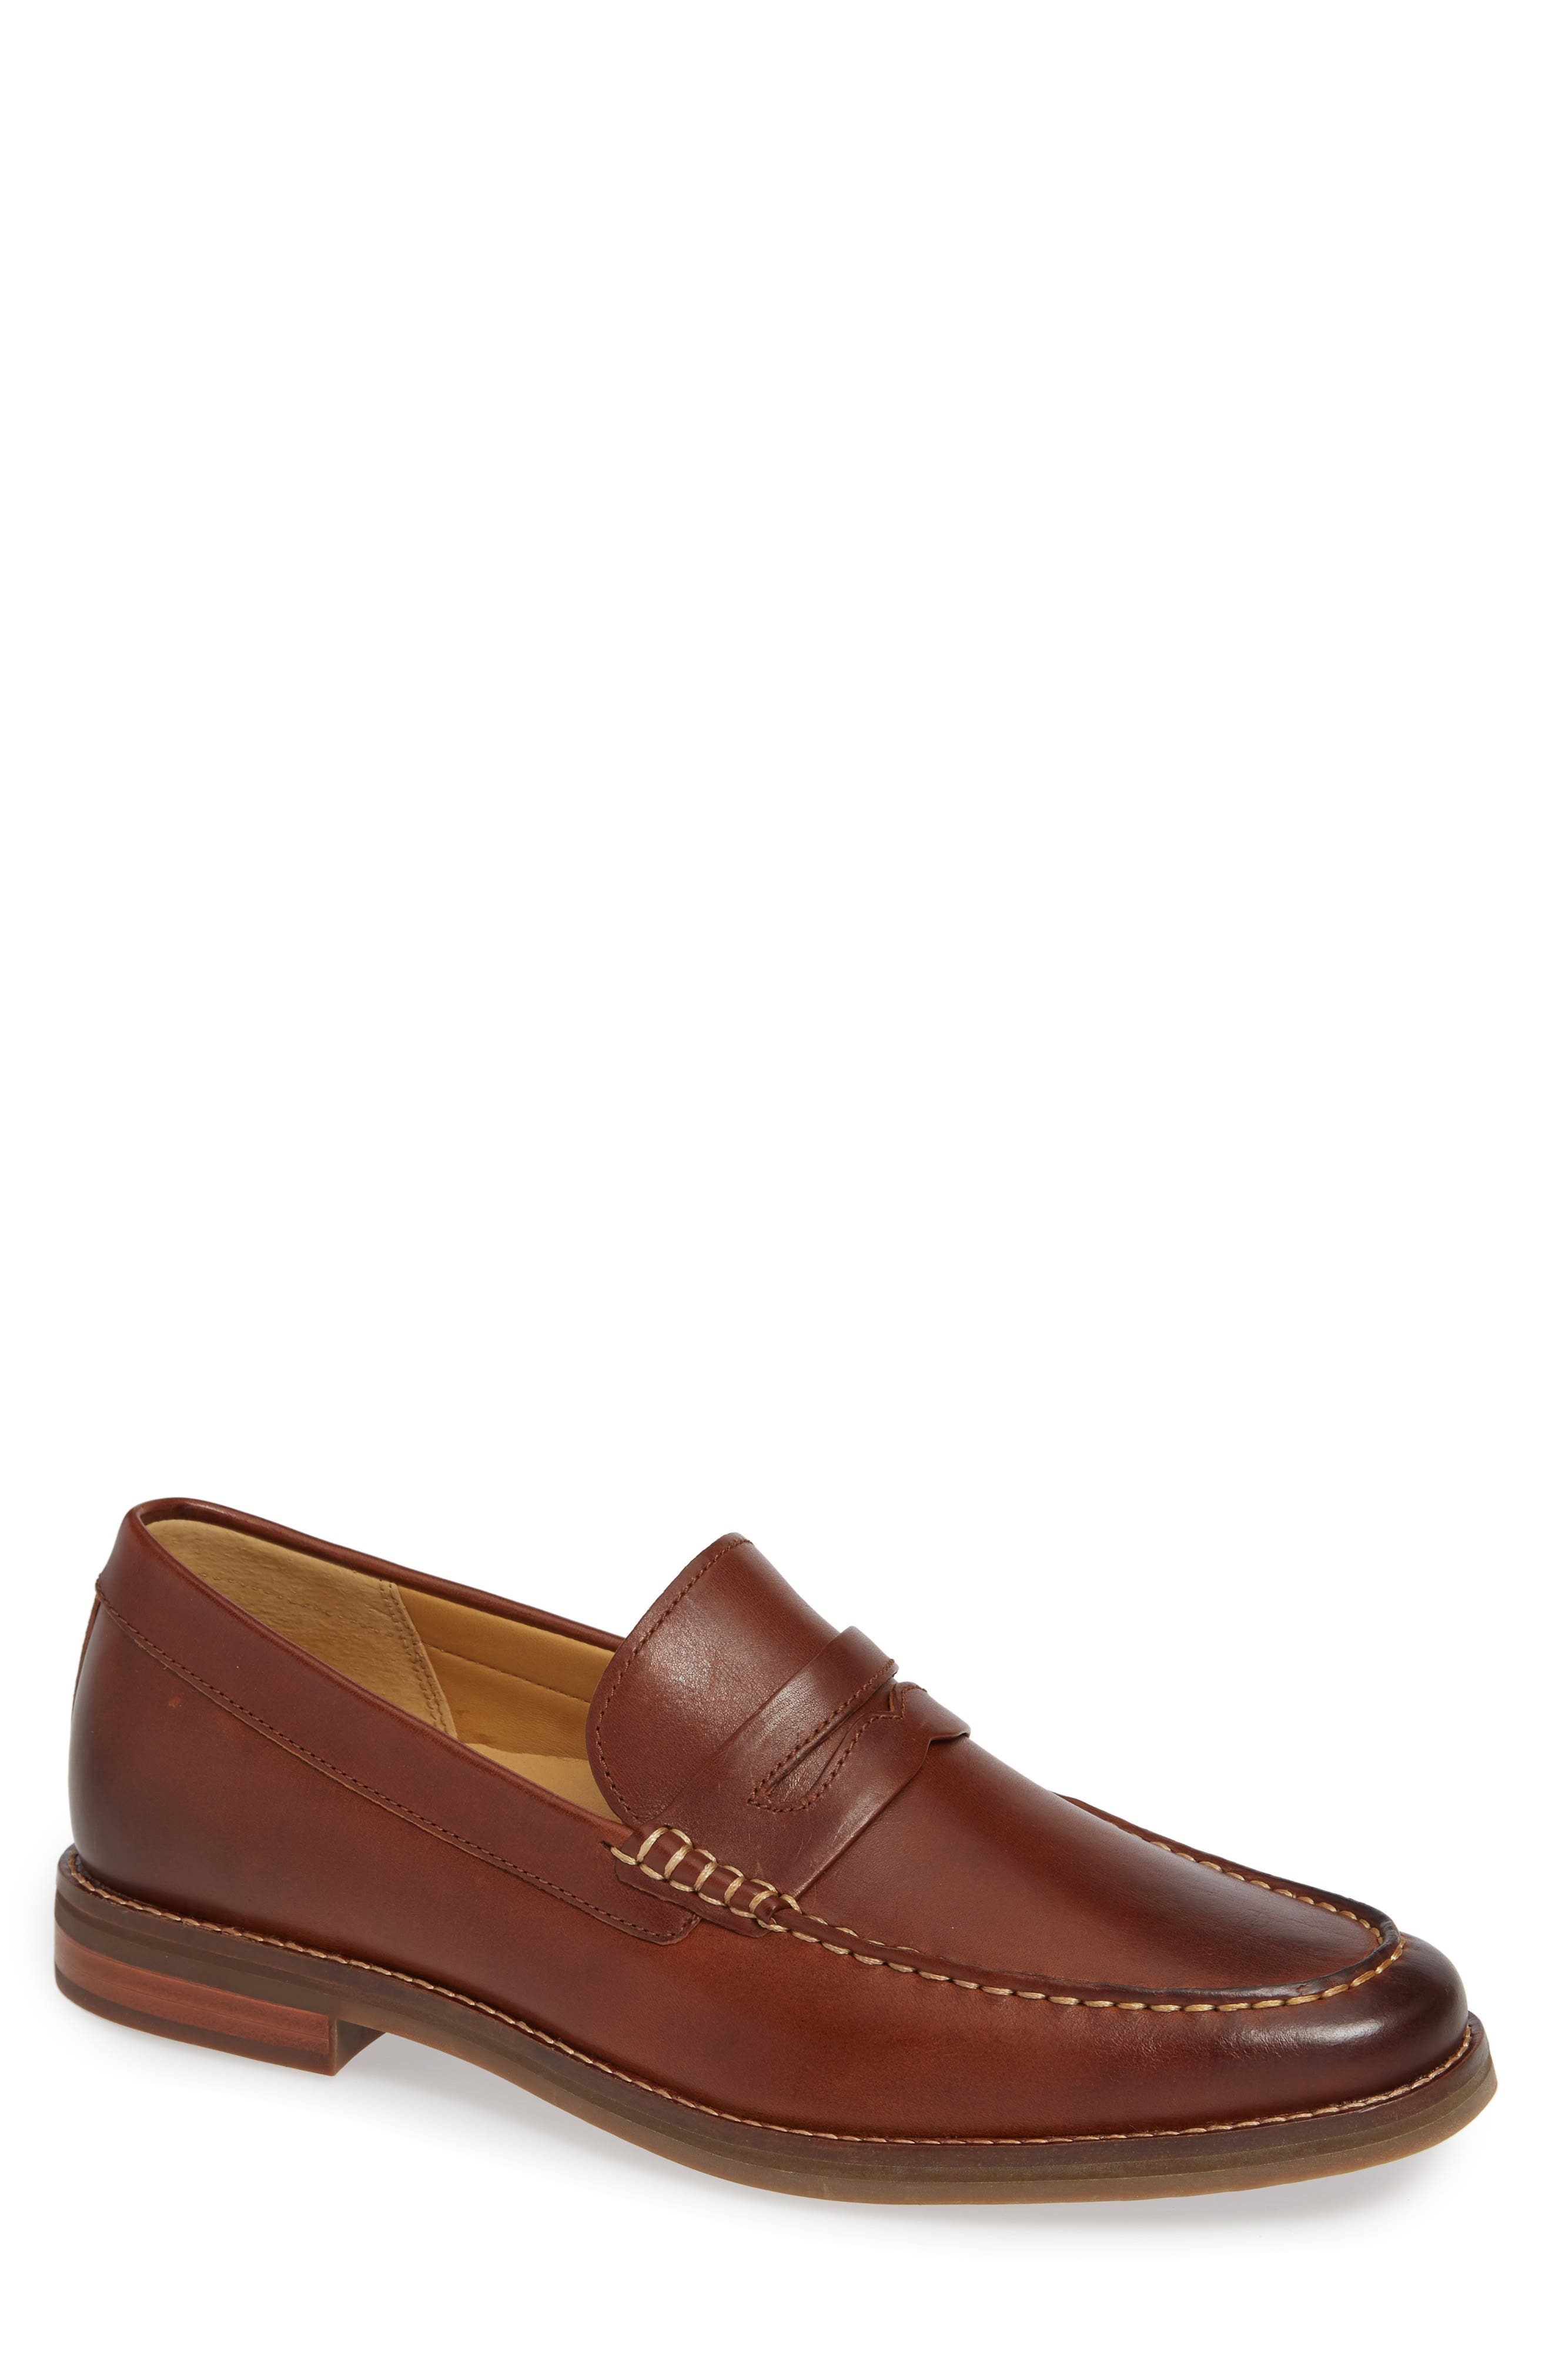 Gold Cup Exeter Penny Loafer,                         Main,                         color, TAN